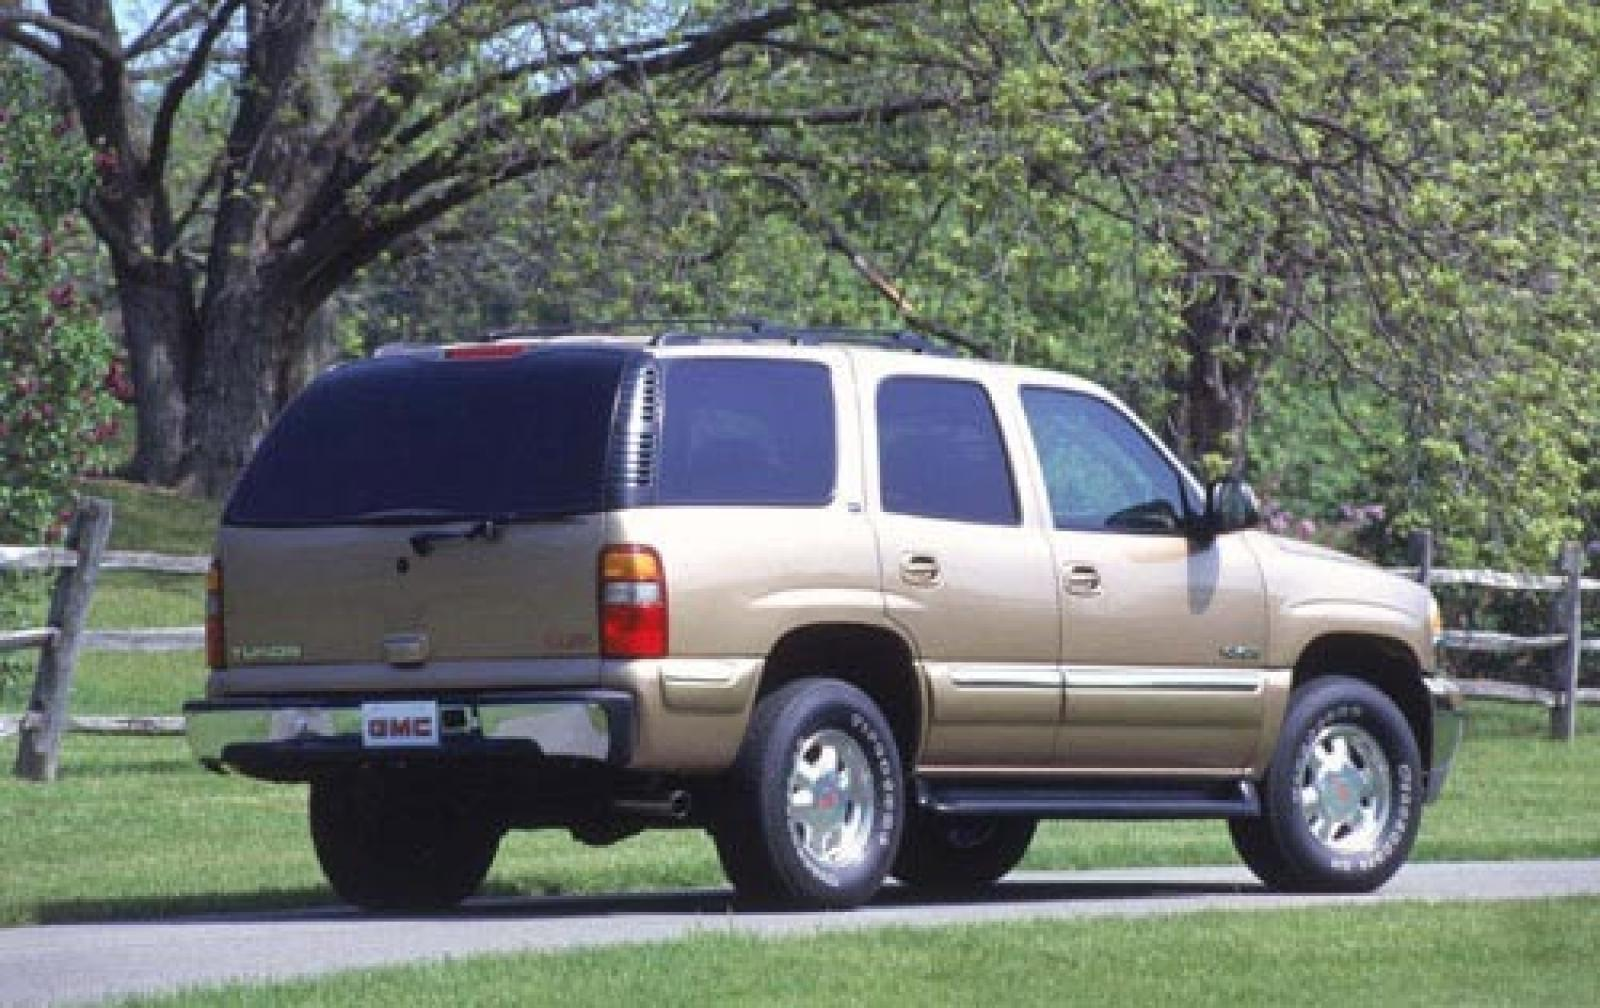 2002 gmc yukon information and photos zombiedrive. Black Bedroom Furniture Sets. Home Design Ideas